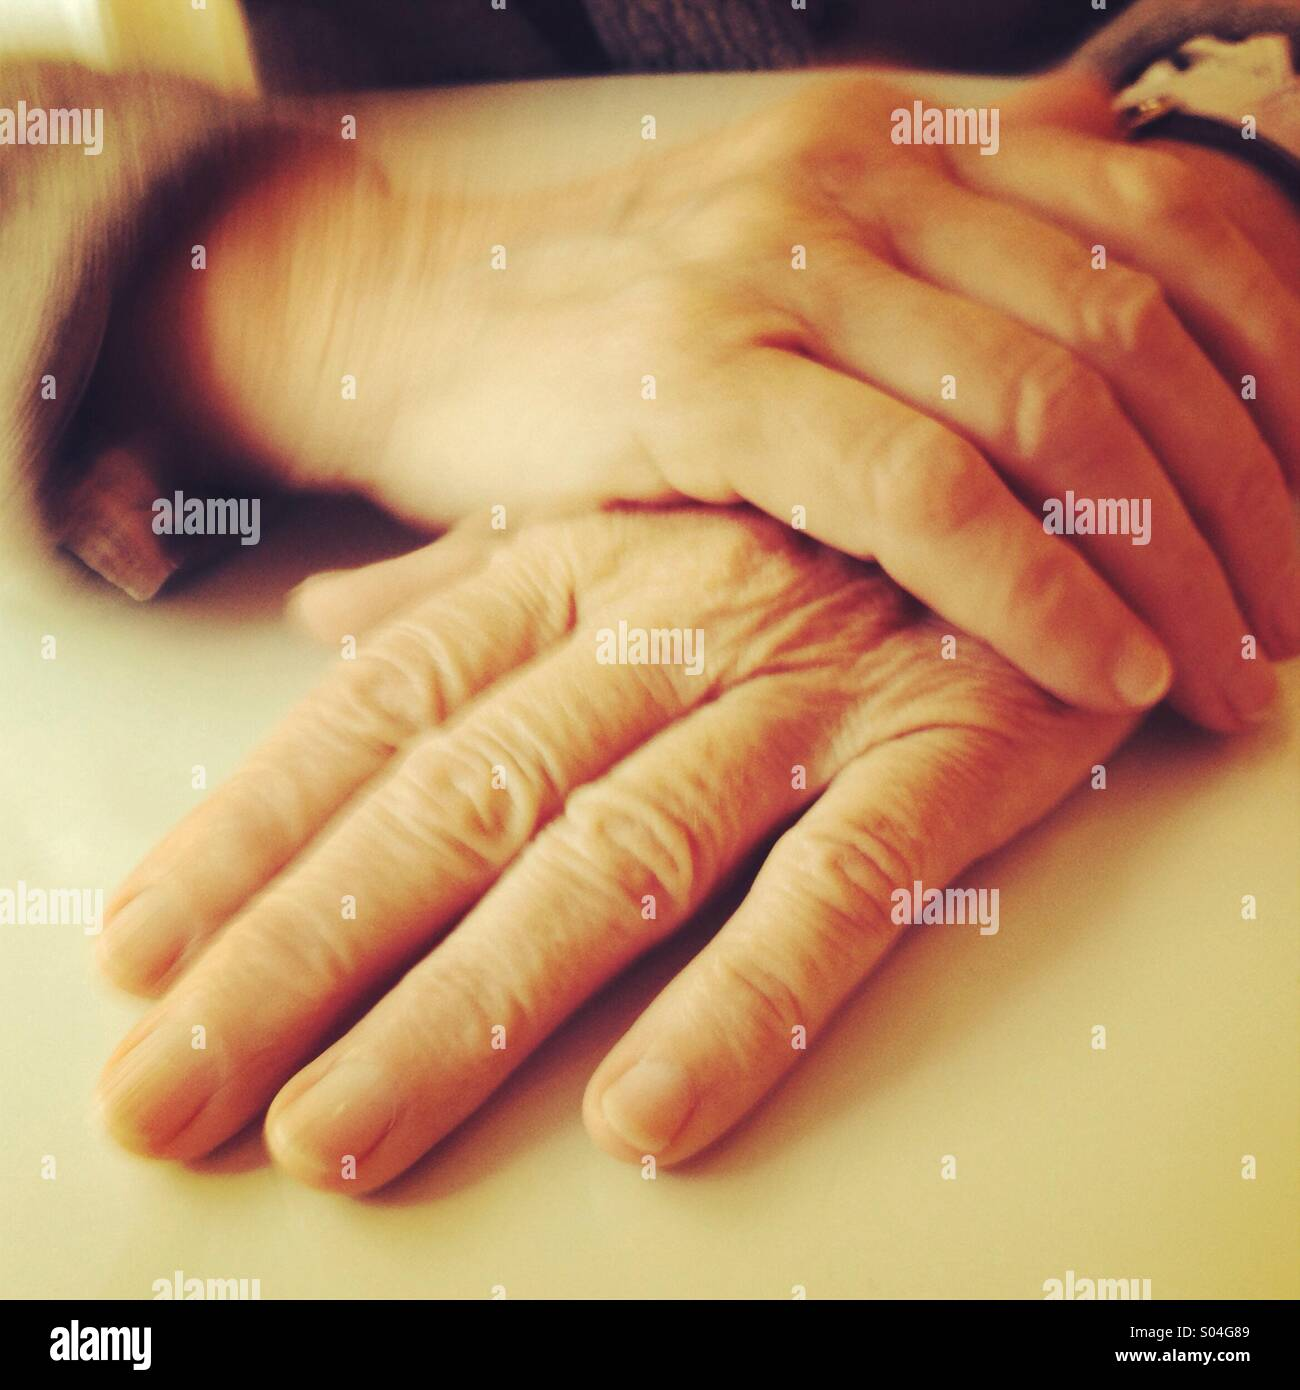 Mothers hands - Stock Image